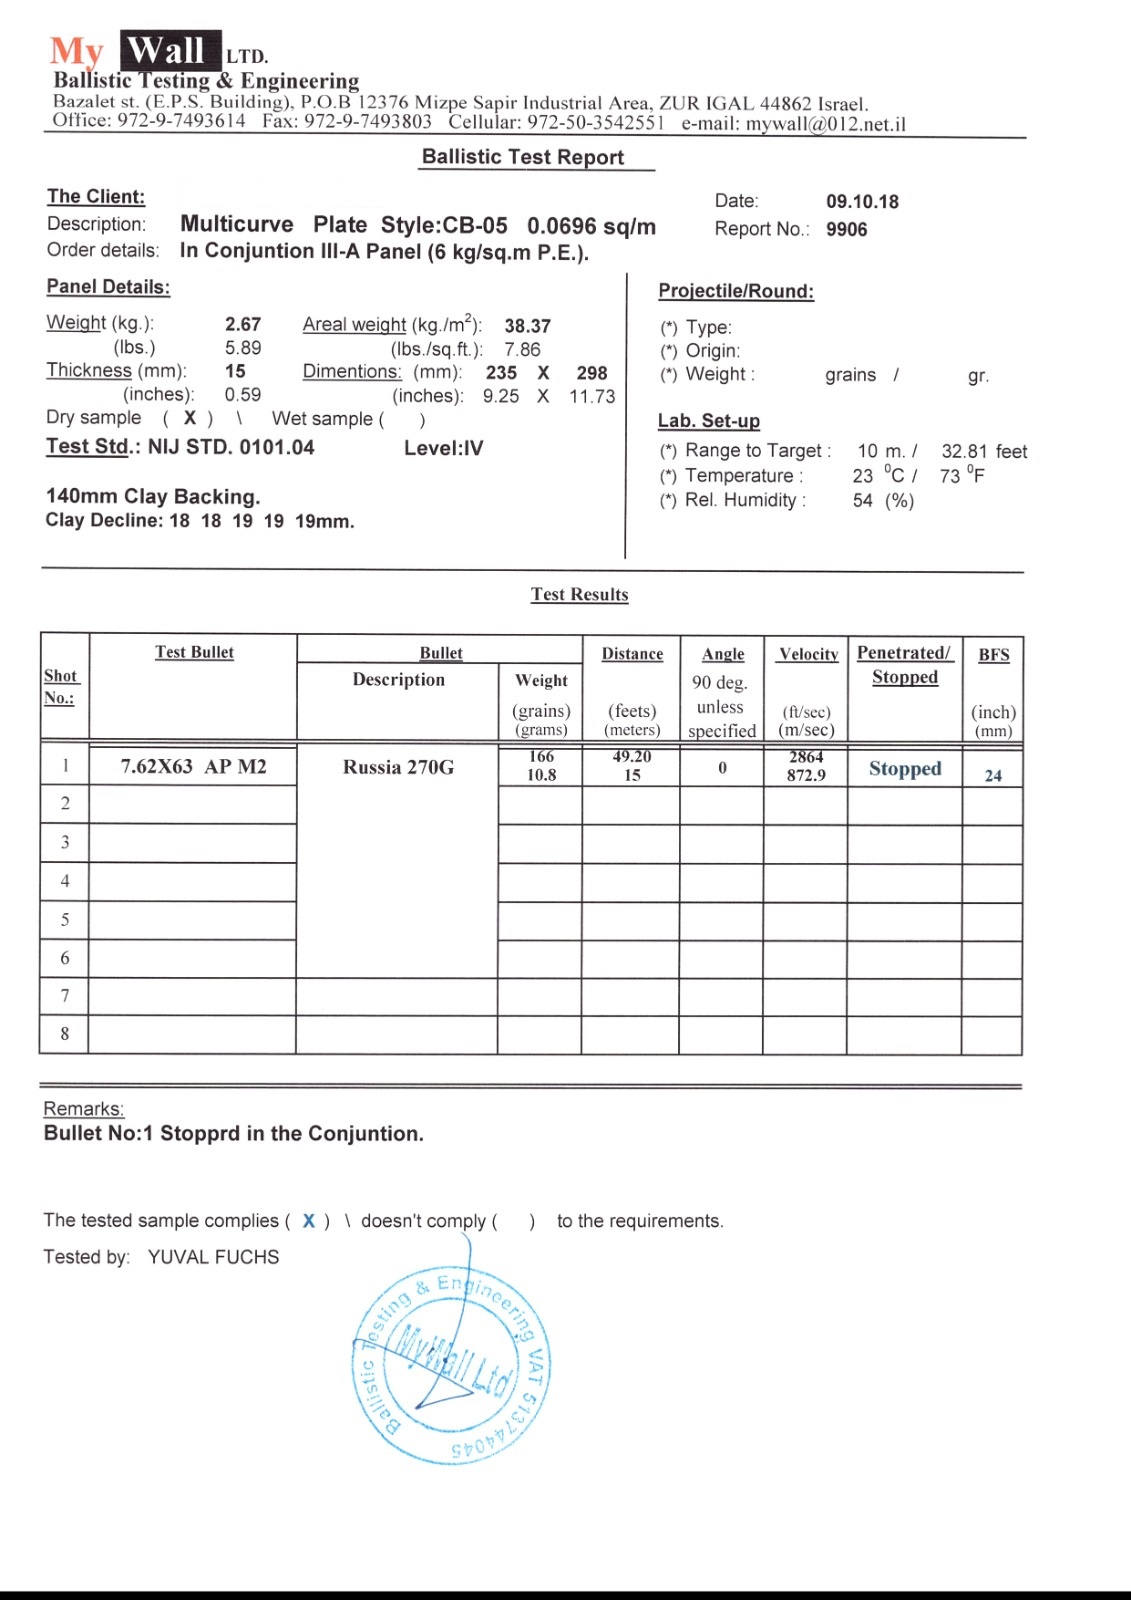 level IV test results